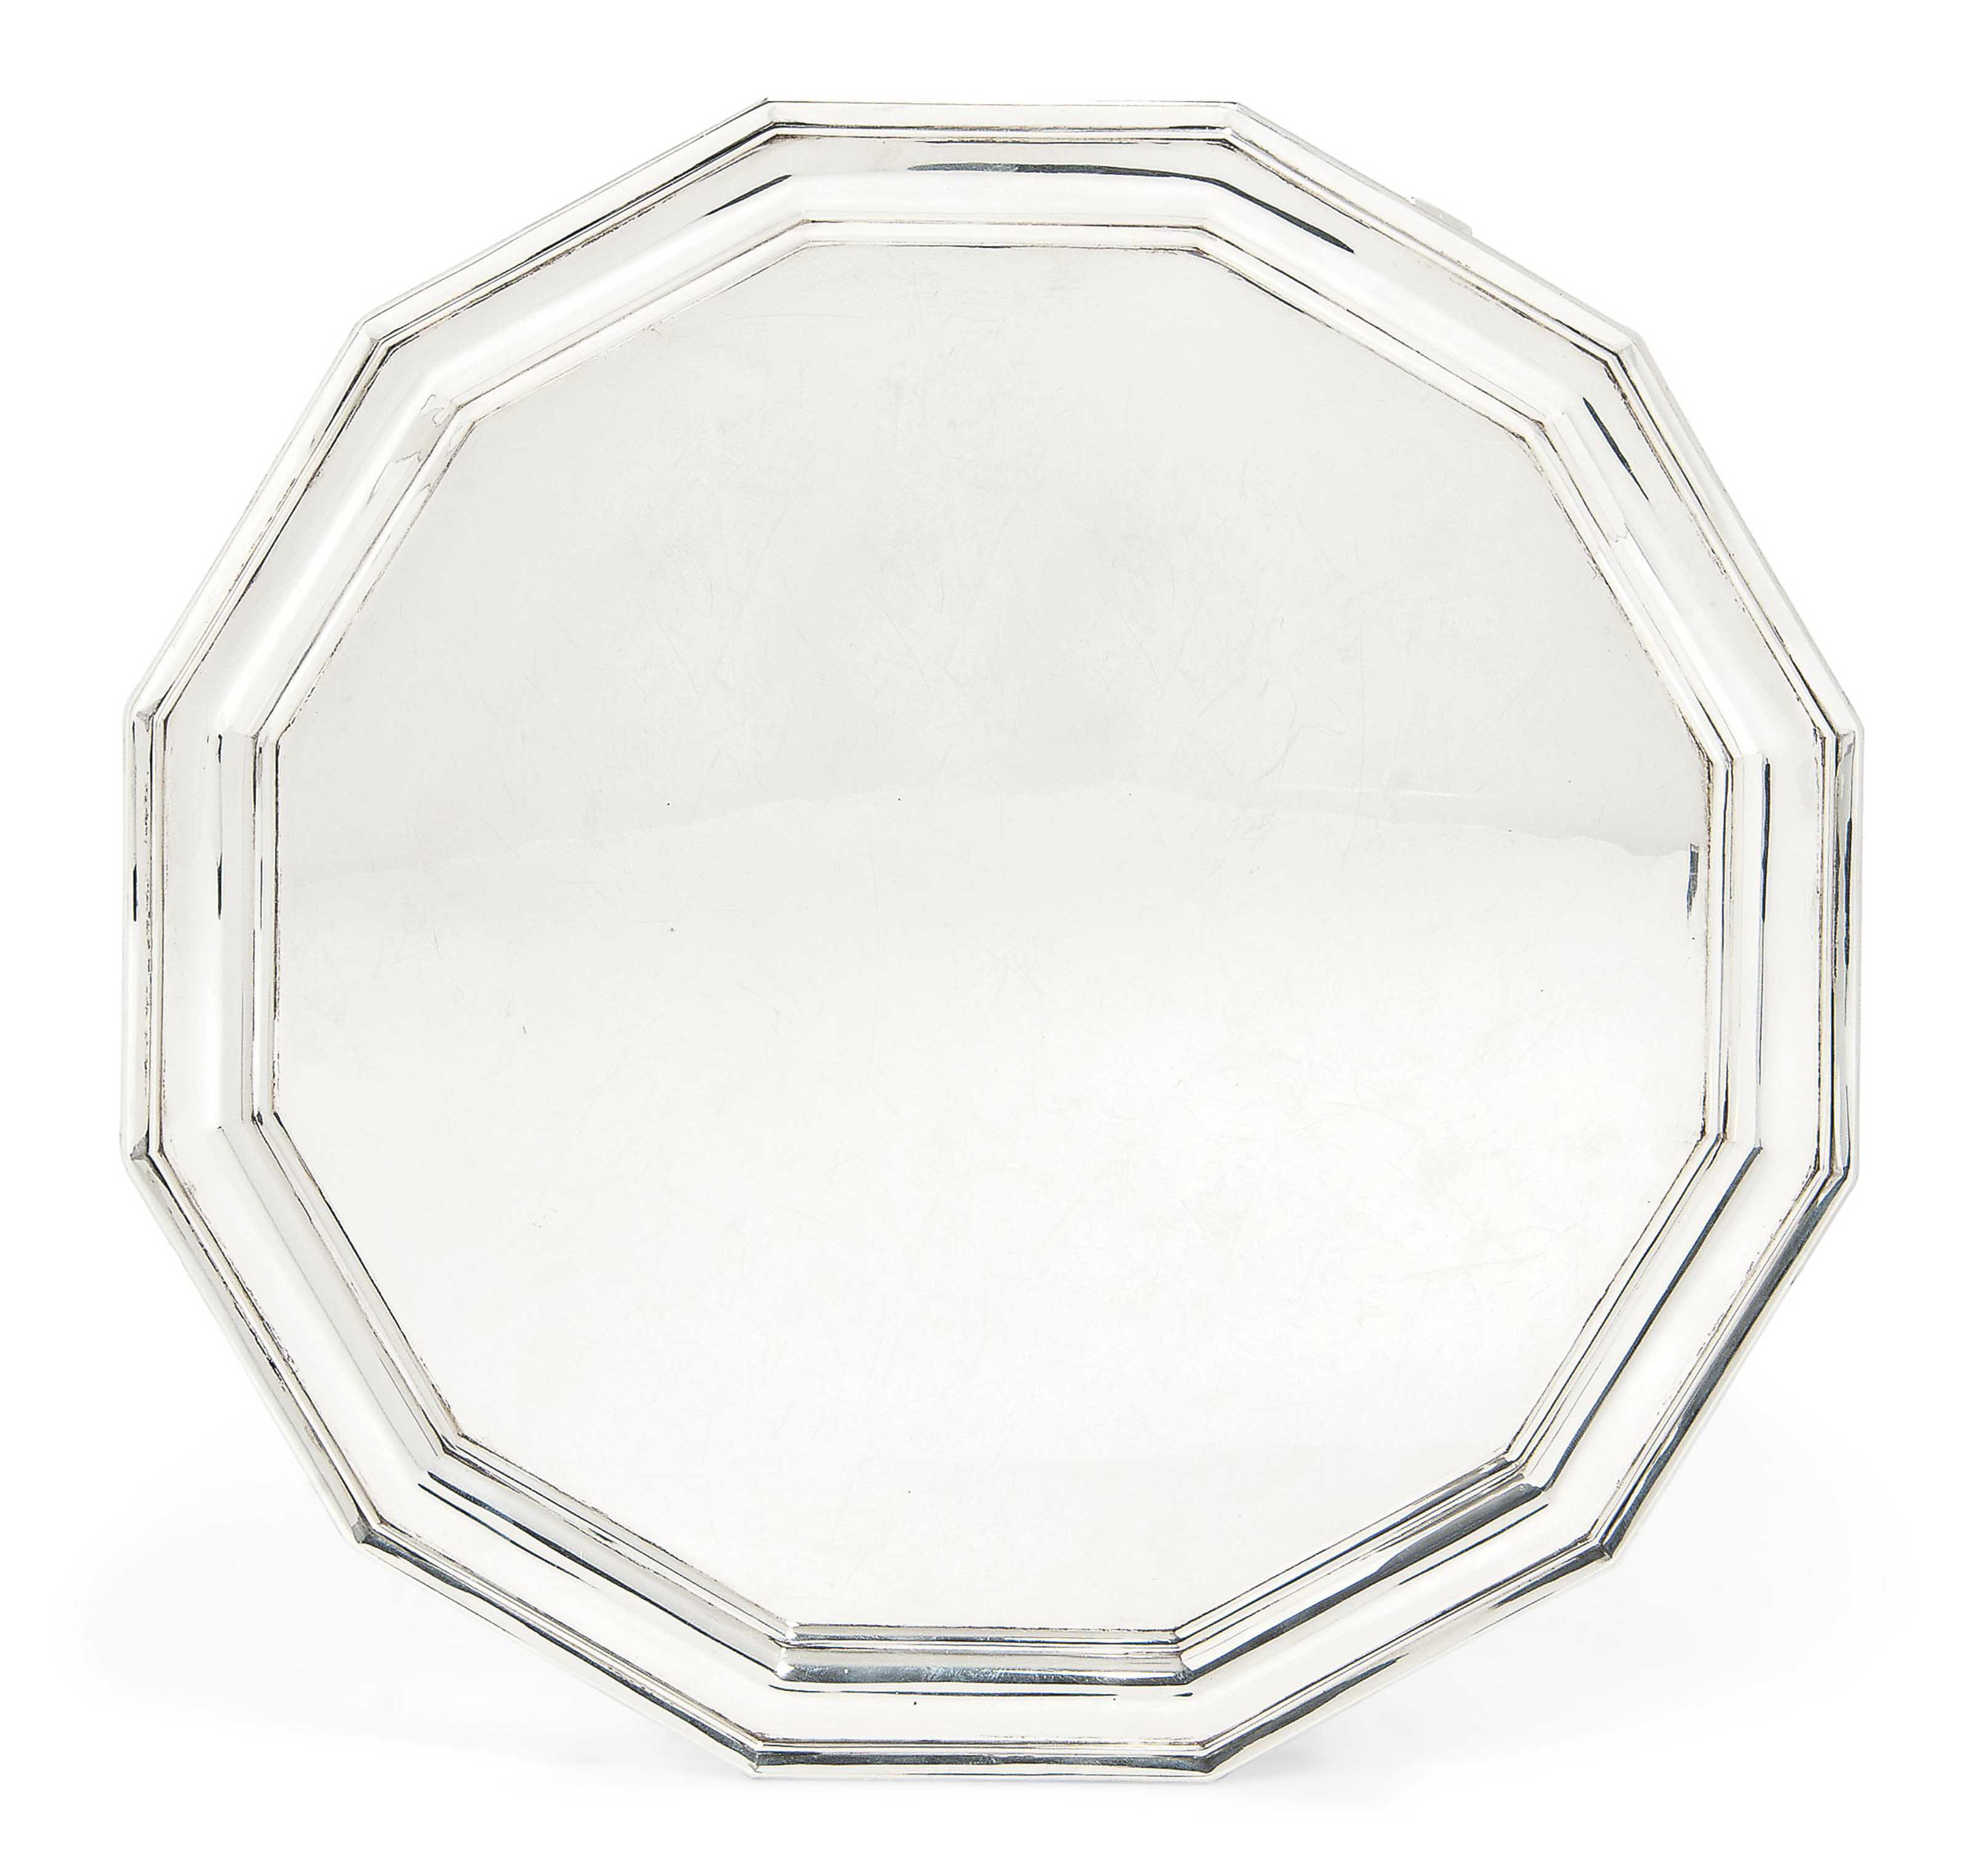 A TWELVE-SIDED SILVER SALVER